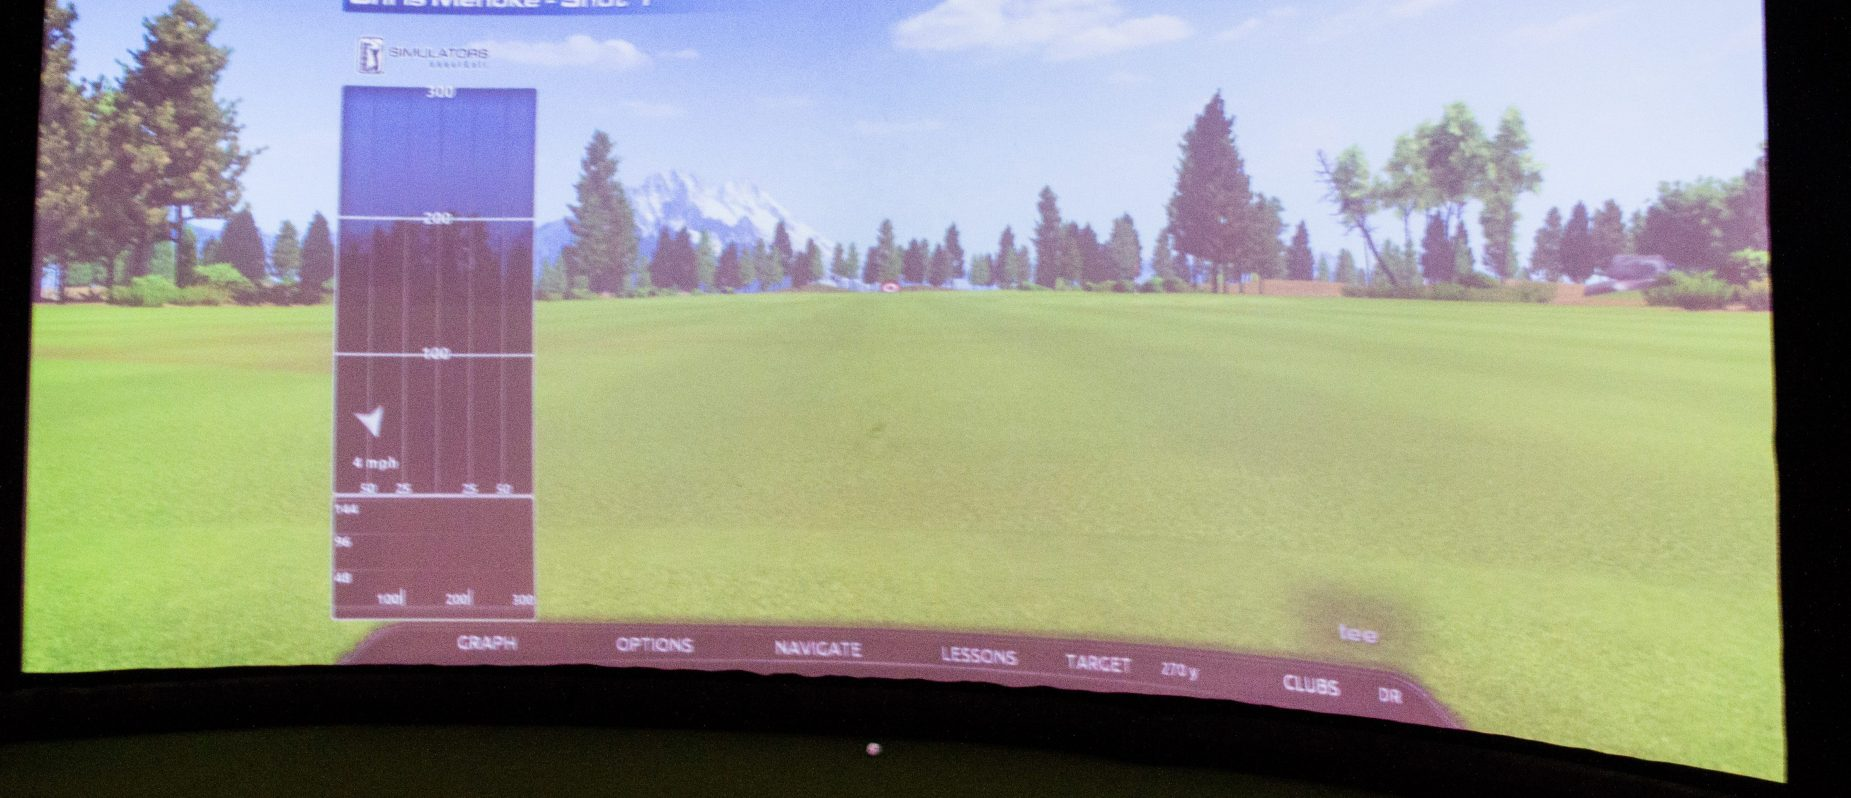 Golf Course Simulation at Kohler Swing Studio